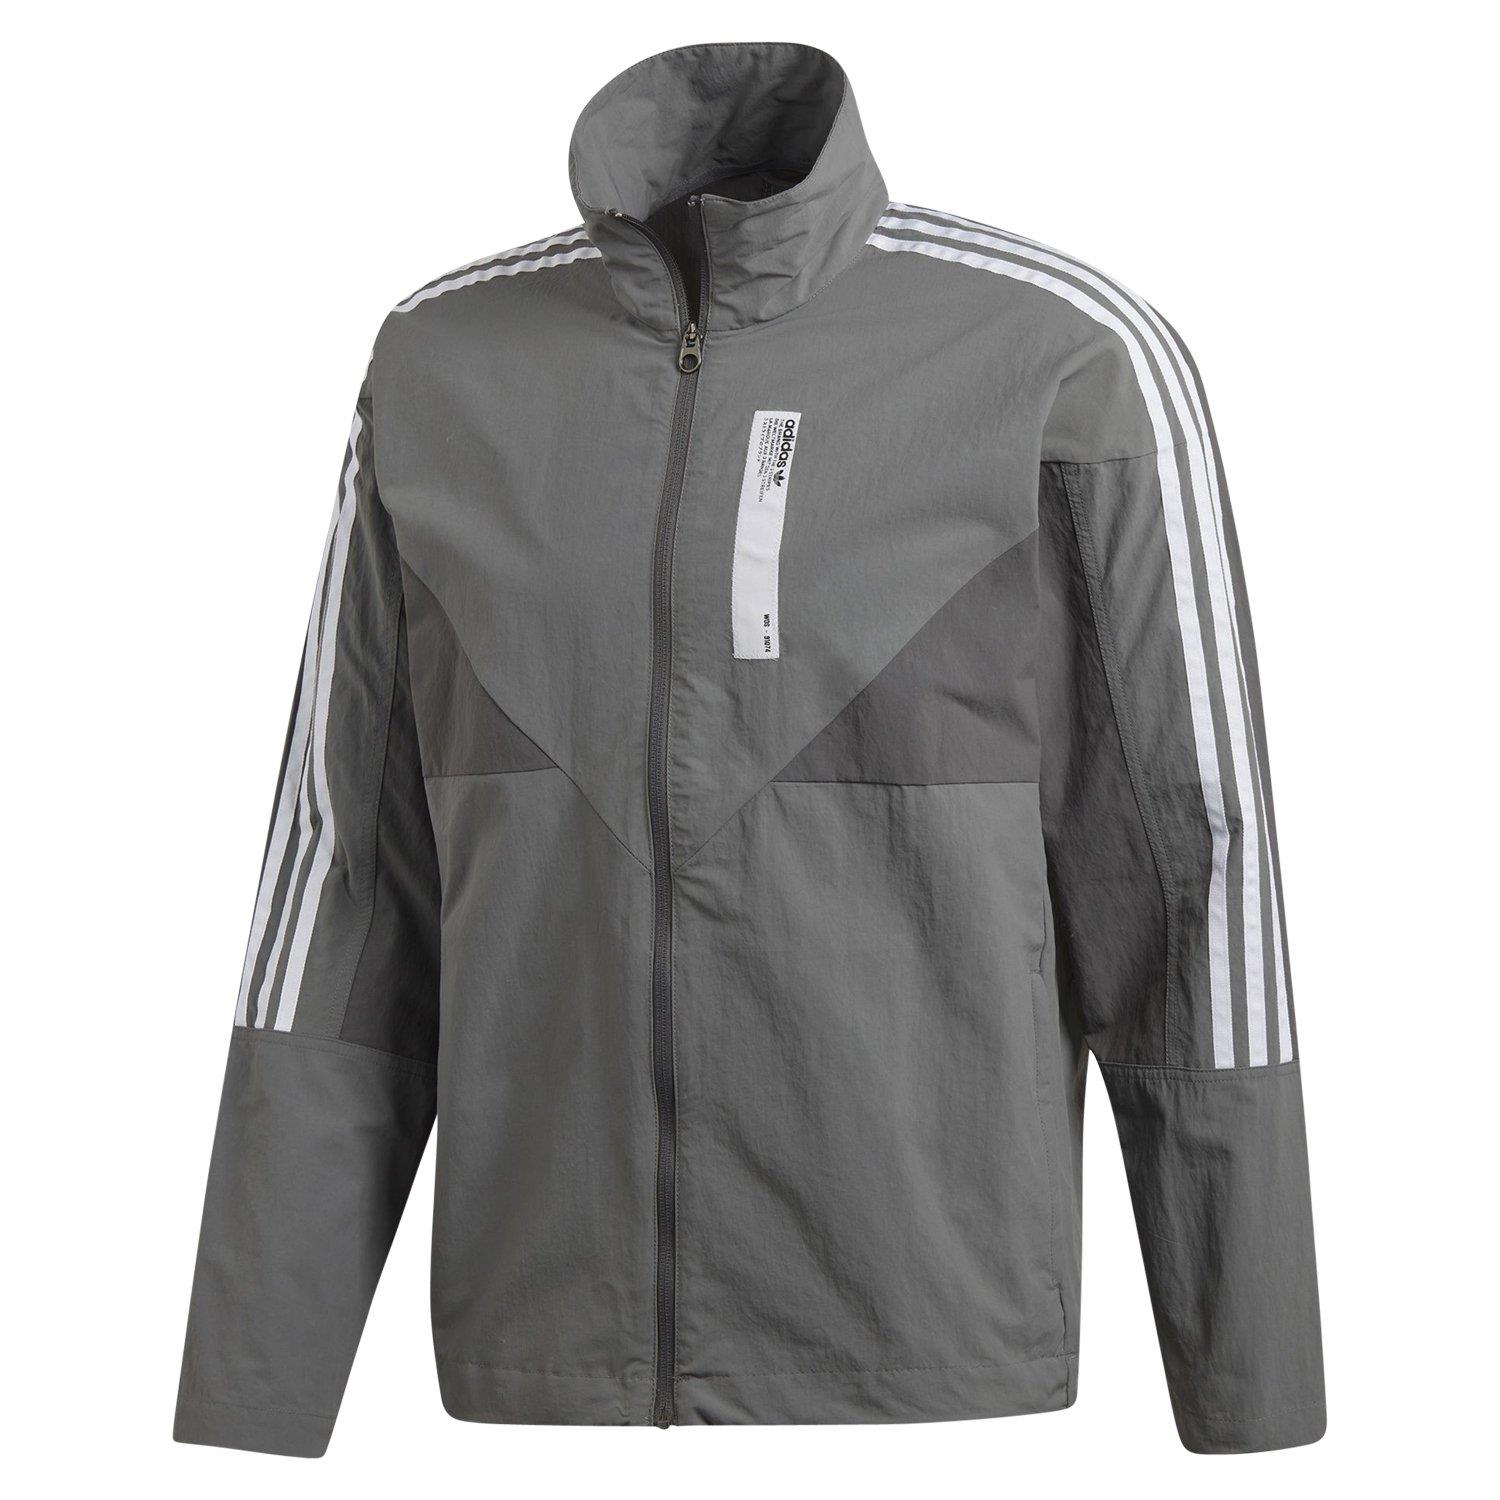 Details zu Adidas Original Nmd Colorado Trainingsjacke Grau Retro Neu Modern Top HERREN